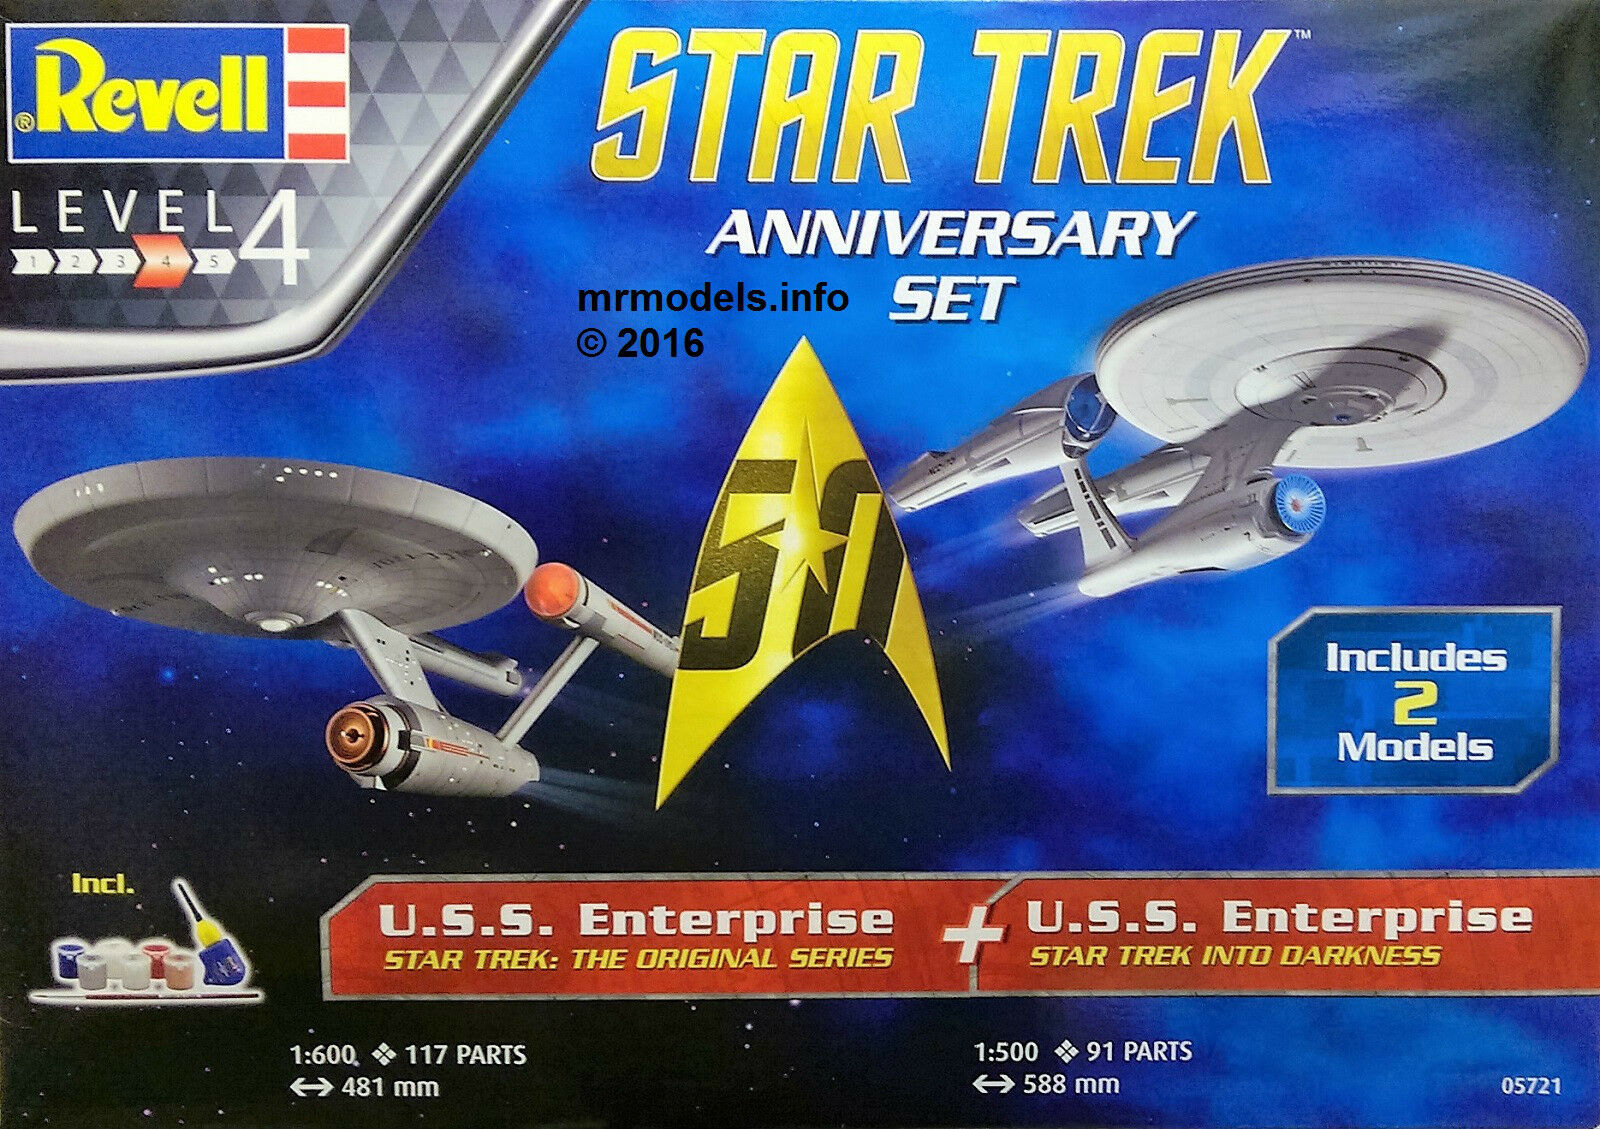 Revell 50th Anniversary Star Trek U.S.S. Enterprise Set  Plastic Model Kit 05721